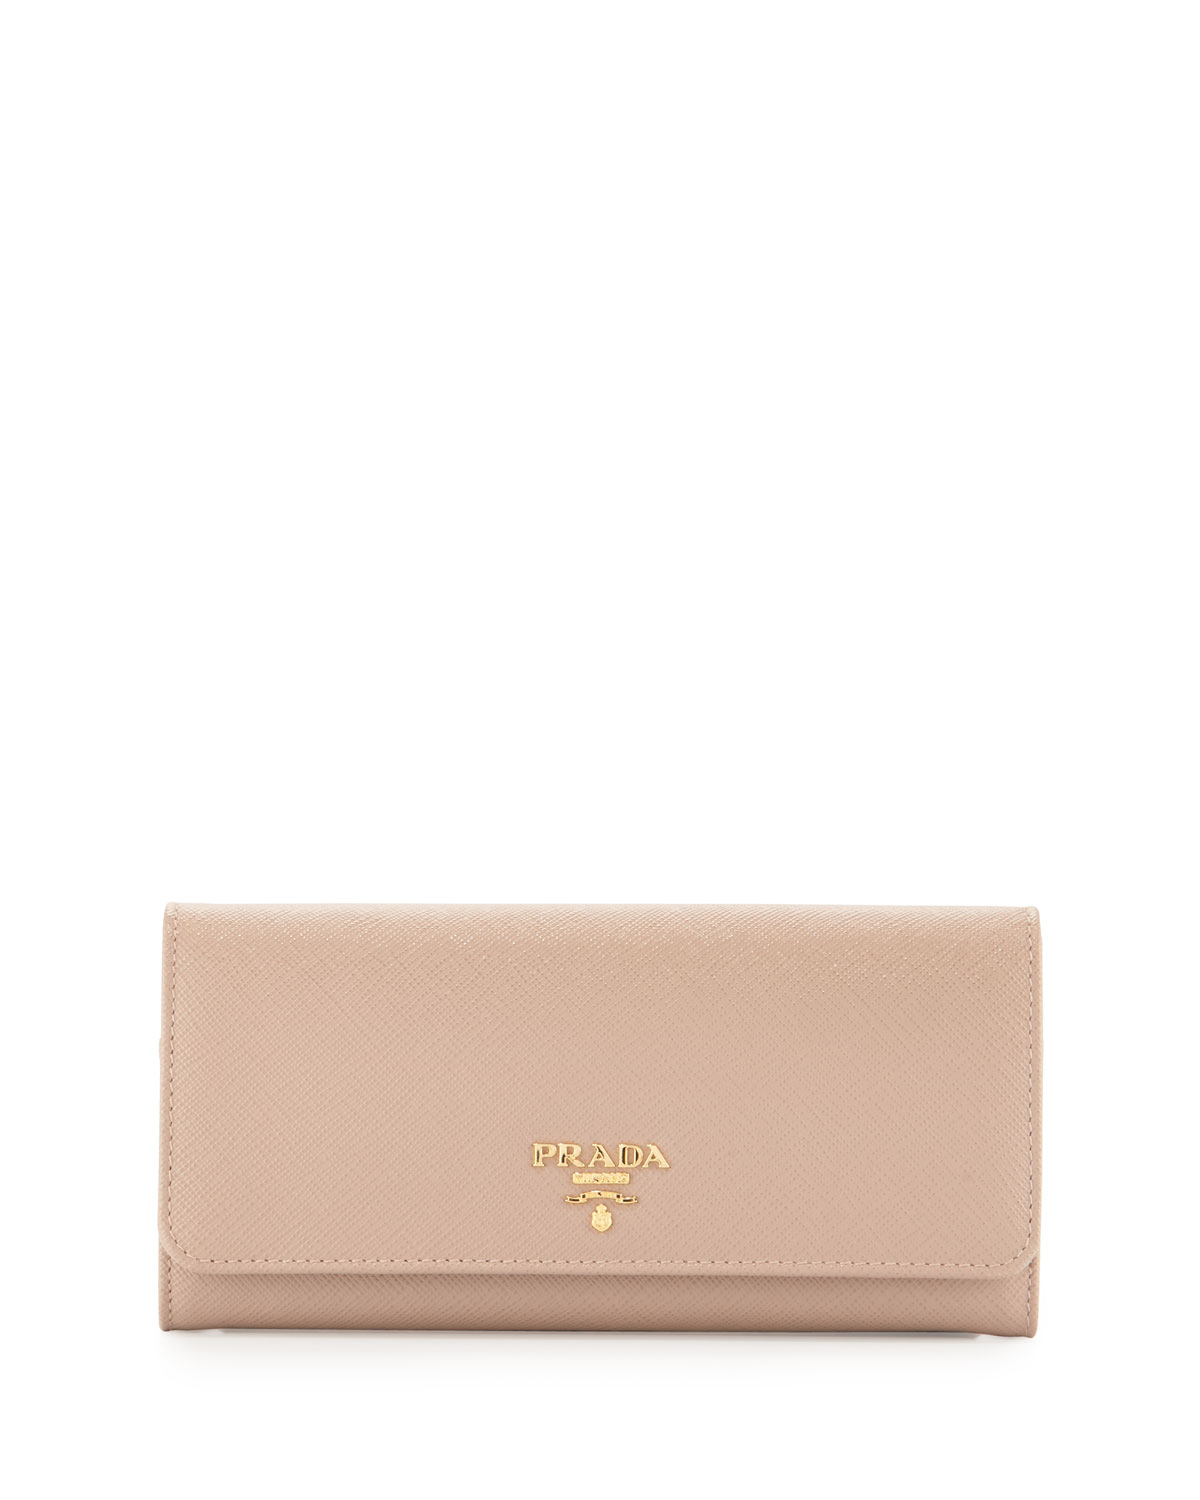 466f02602e949 Prada Saffiano Leather Continental Wallet